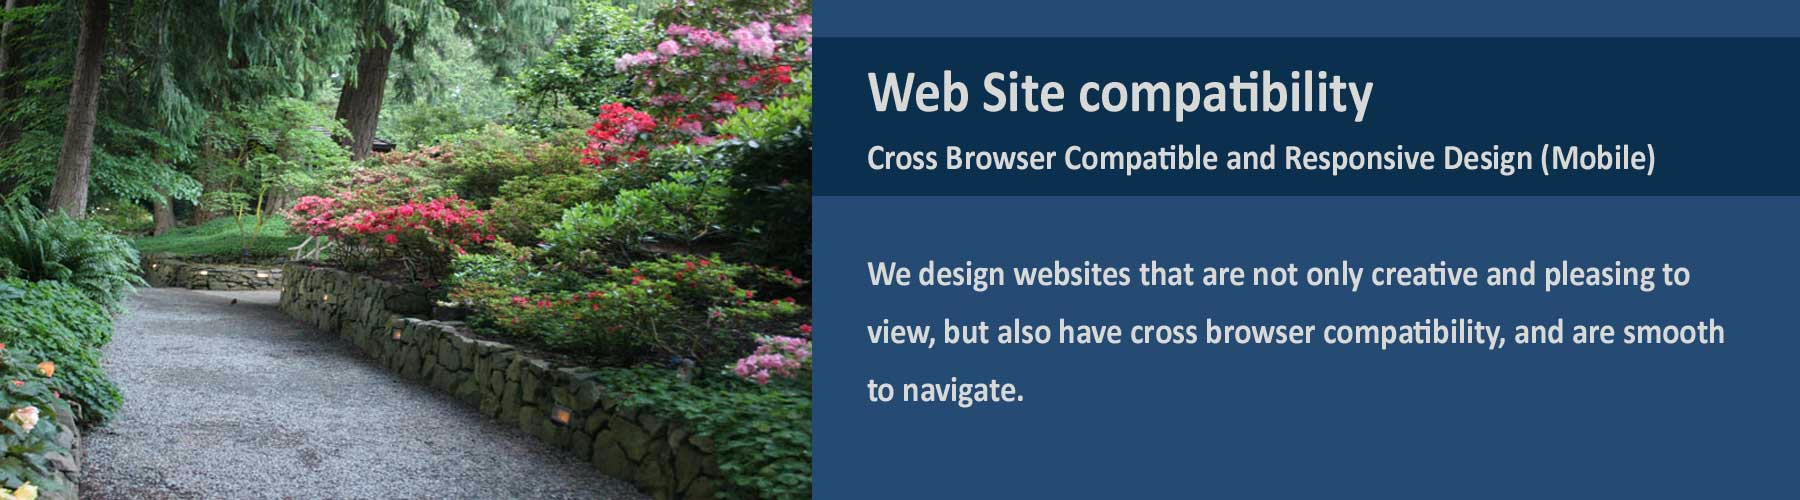 websitecompatibility